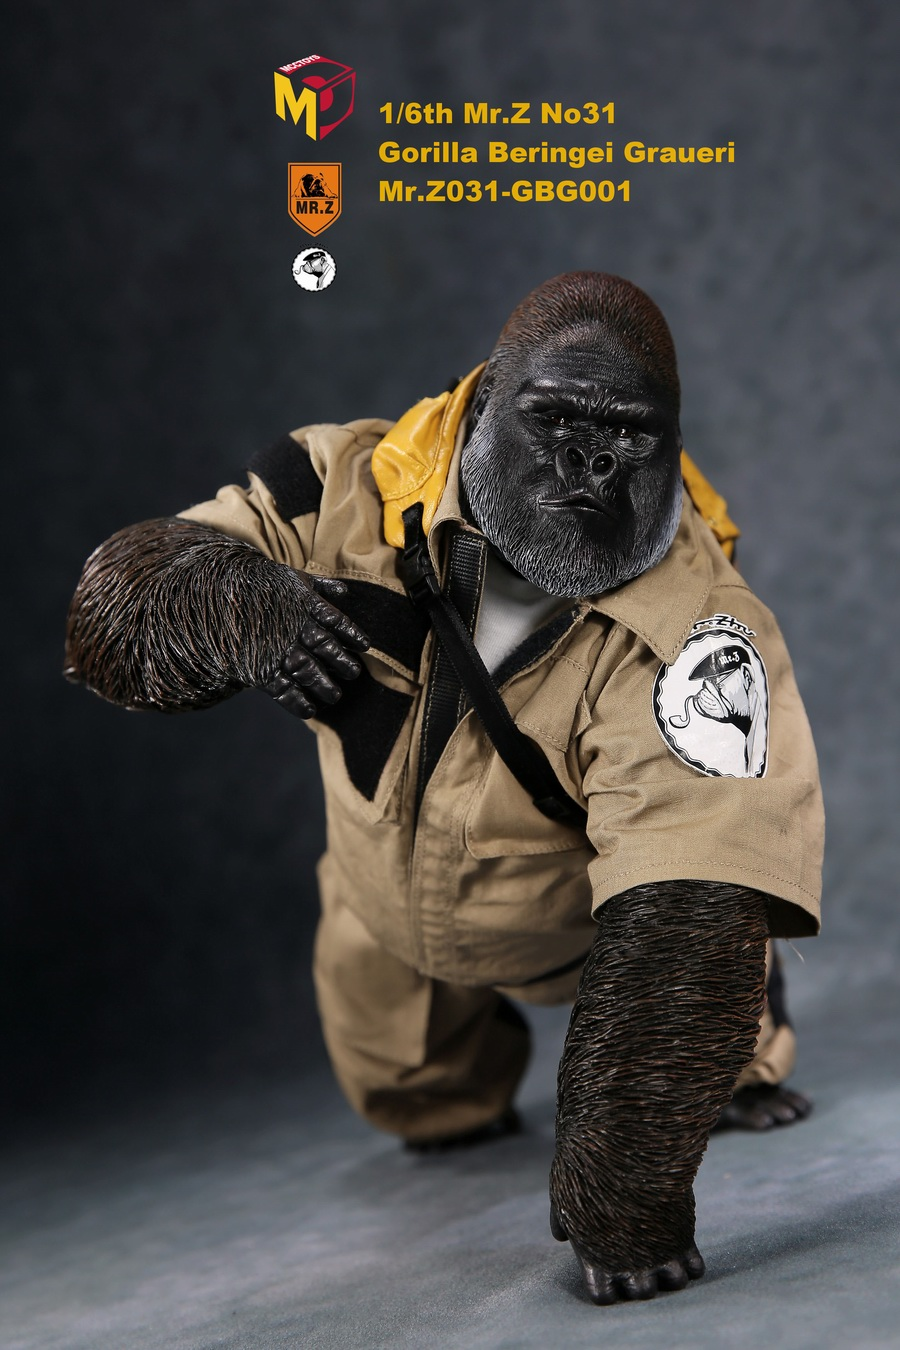 NEW PRODUCT: Mr.Z new product: 1/6 simulation animal model 31st bomb - African lowland gorilla (all 2 heads can be changed to upper limbs) 10102710